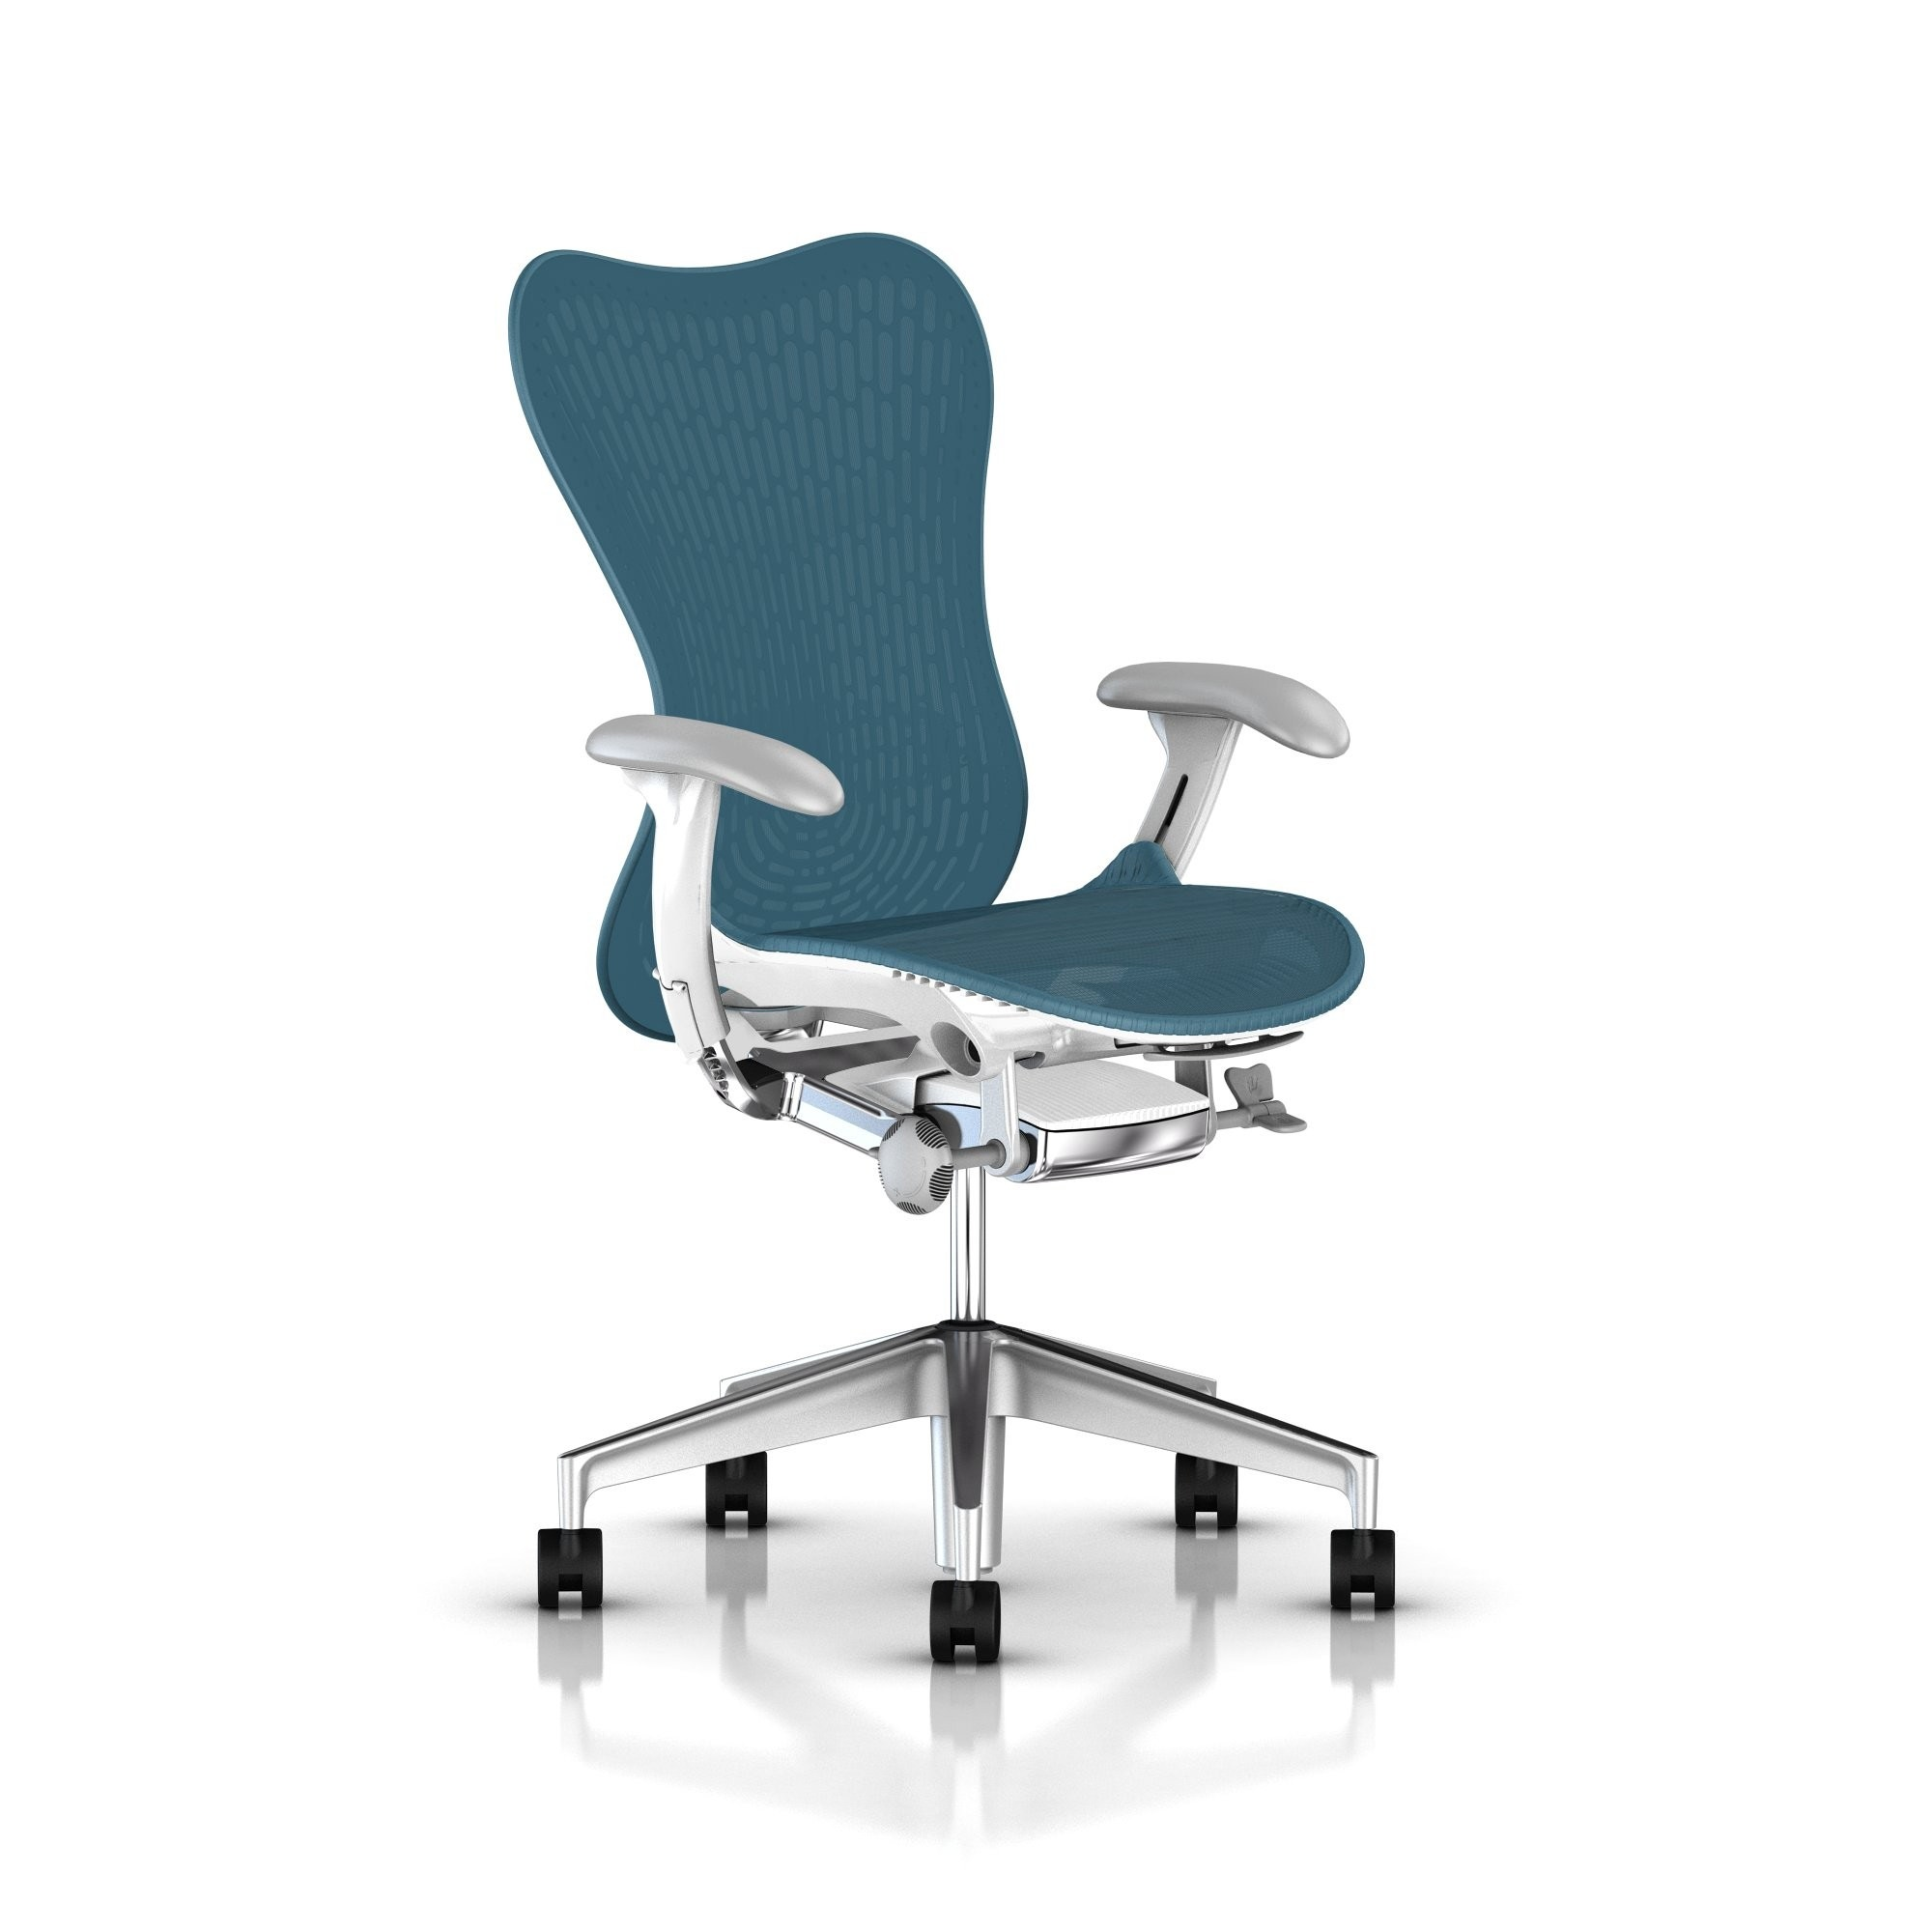 herman miller mirra®  chair  executive turquoise  gr shop canada - herman miller mirra®  chair  executive turquoise